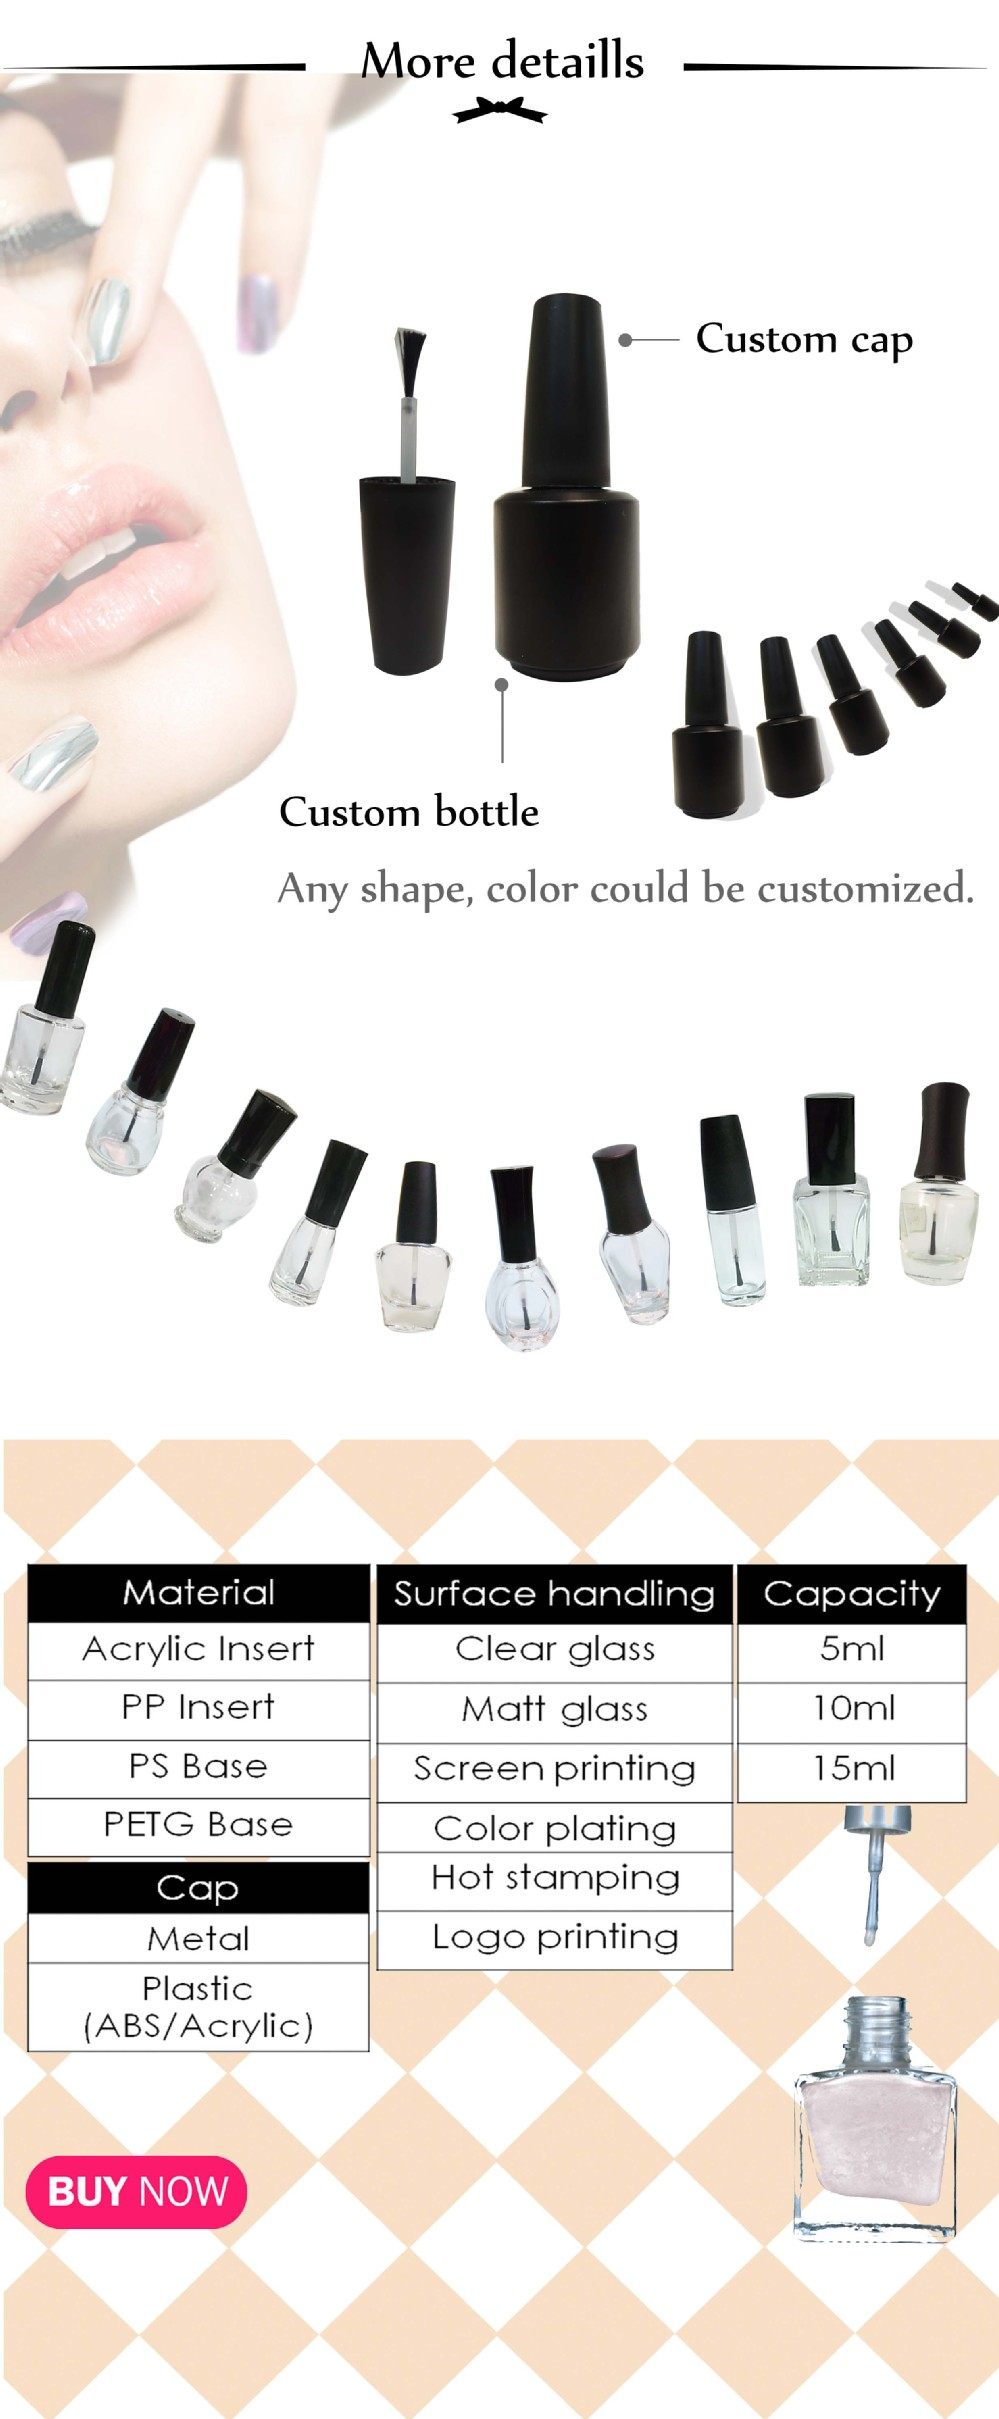 7ml new design unique nail polish glass bottle with brush applicator